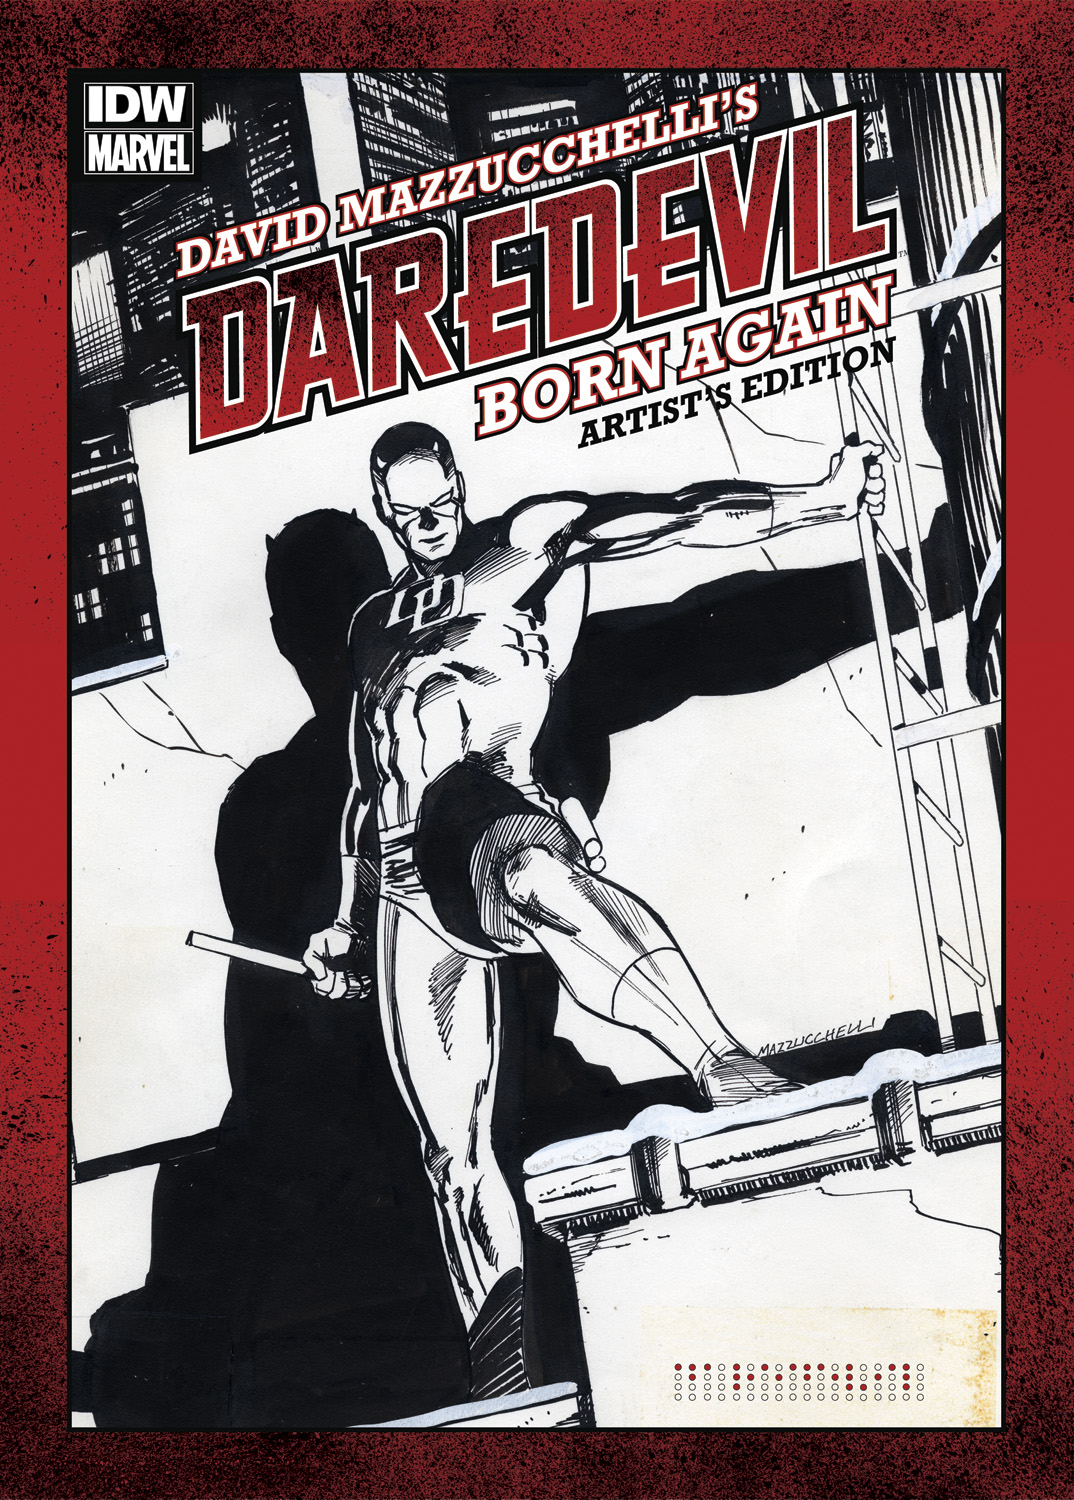 Daredevil Artist Edition